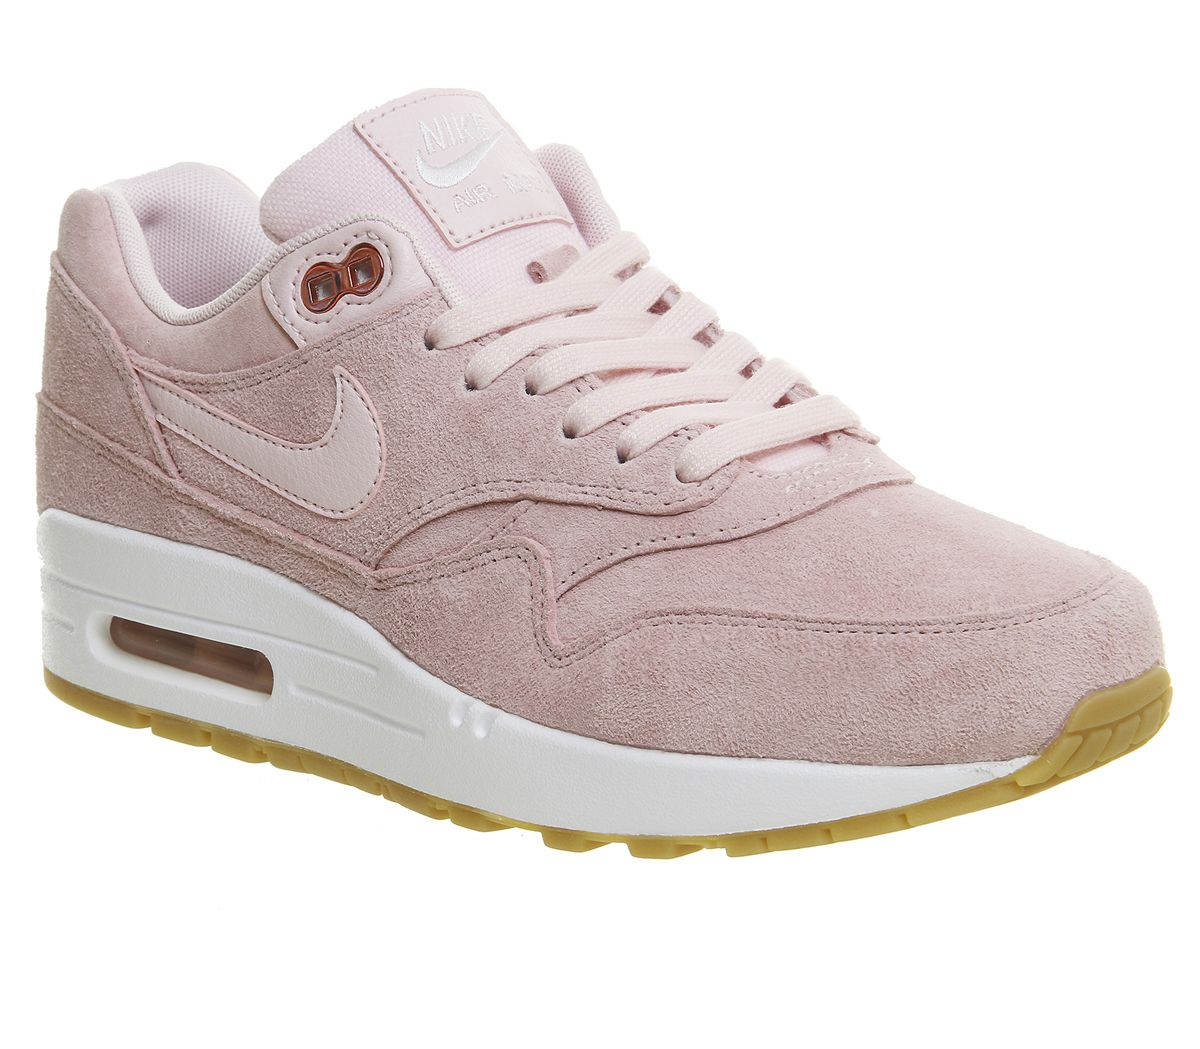 9d9a068e07 Nike Air Max 1 Trainers Prism Pink White Sheen - Hers trainers